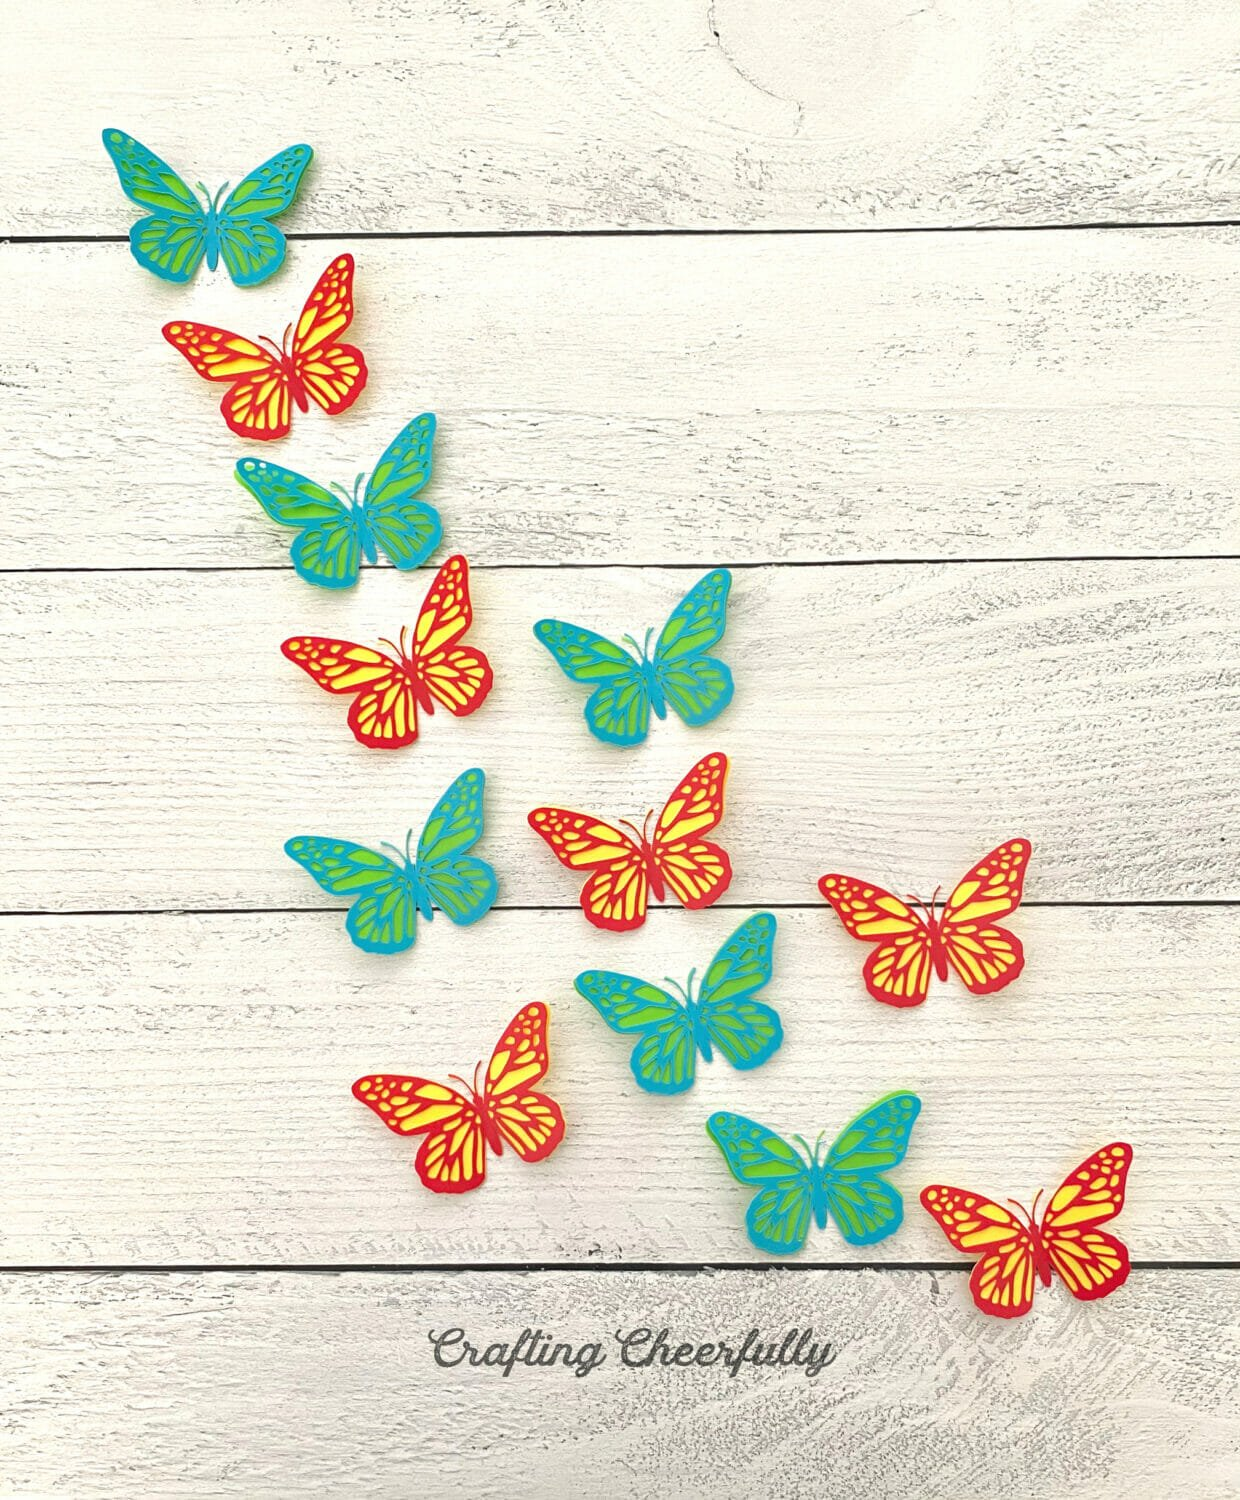 Red and yellow butterflies along with green and blue butterflies are arranged on a wooden surface.